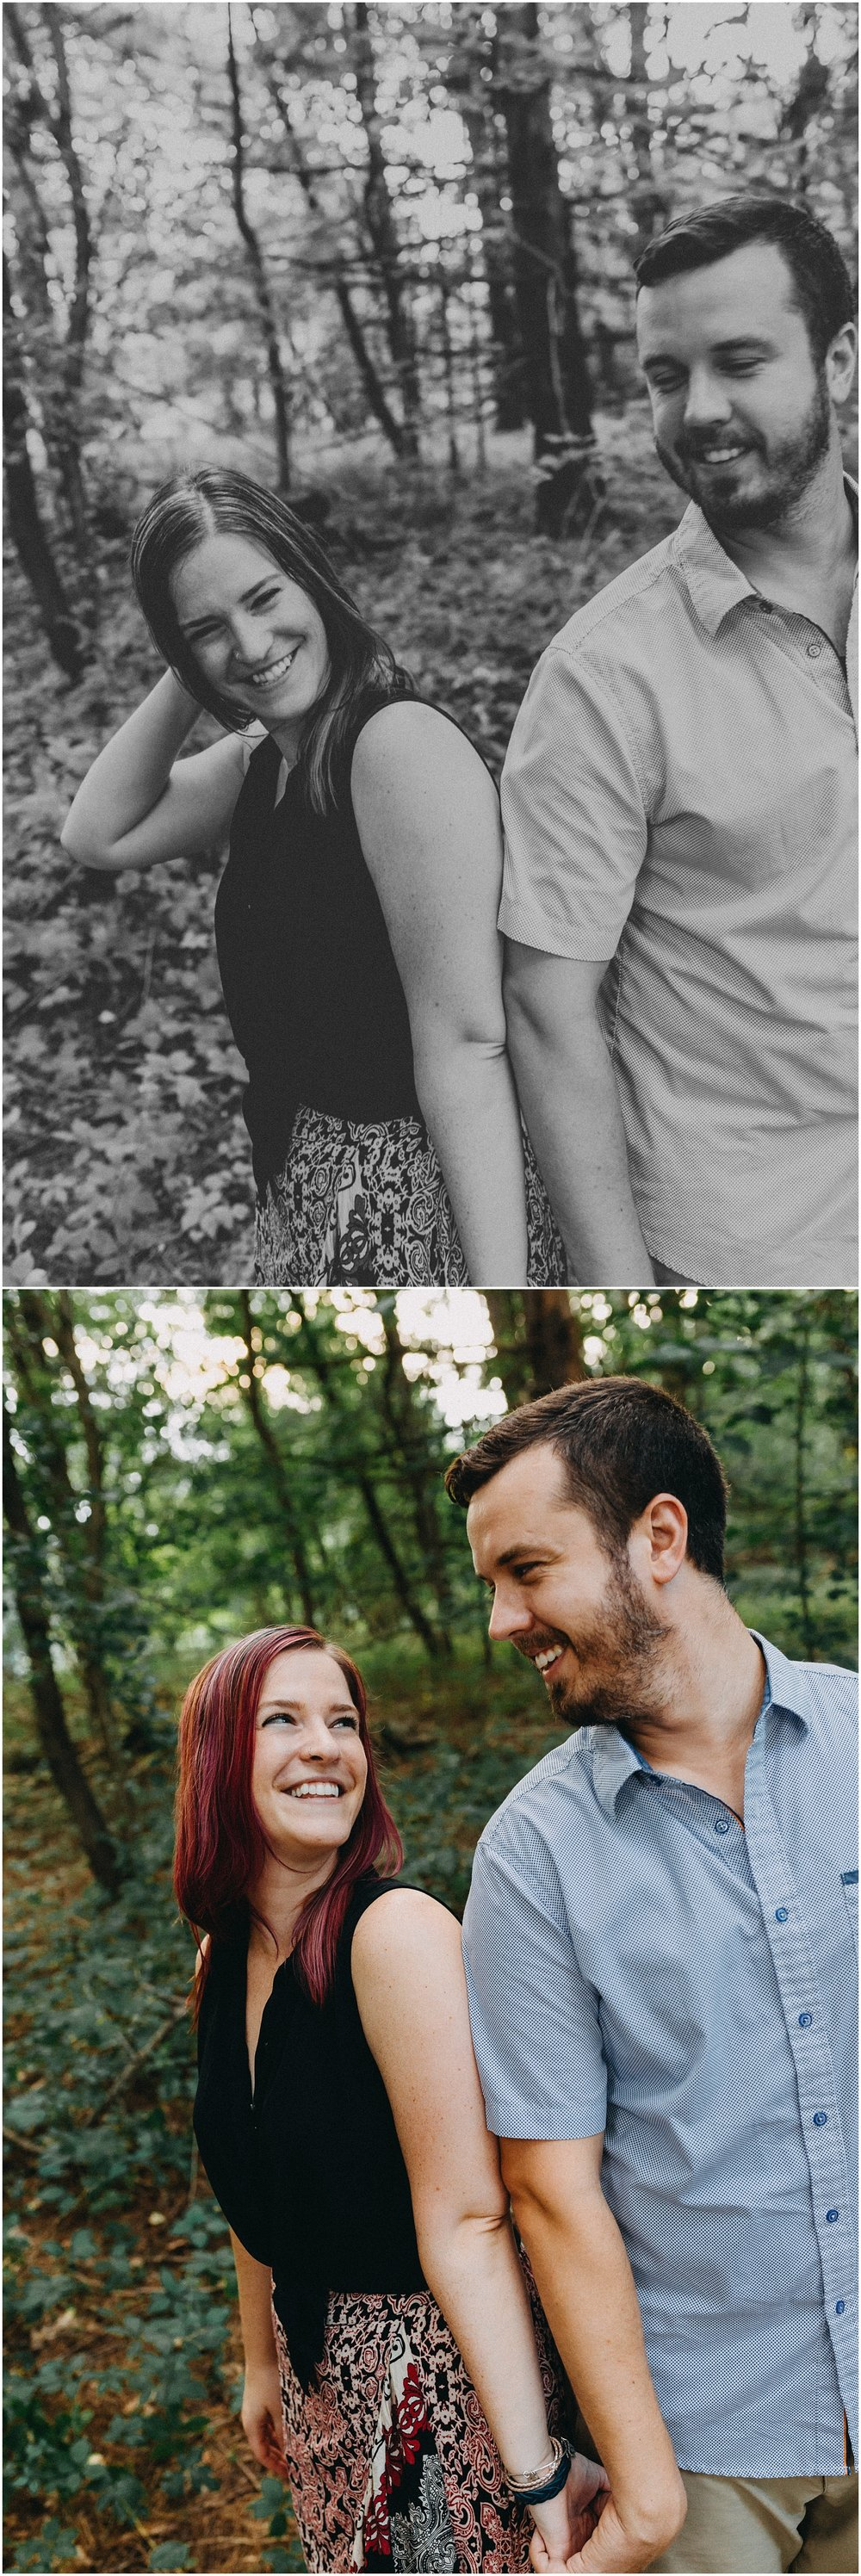 lifestyle-anniversary-engagement-photo session-rv-camping-road trip-vintage trailer-camping-outdoor photos_0254.jpg